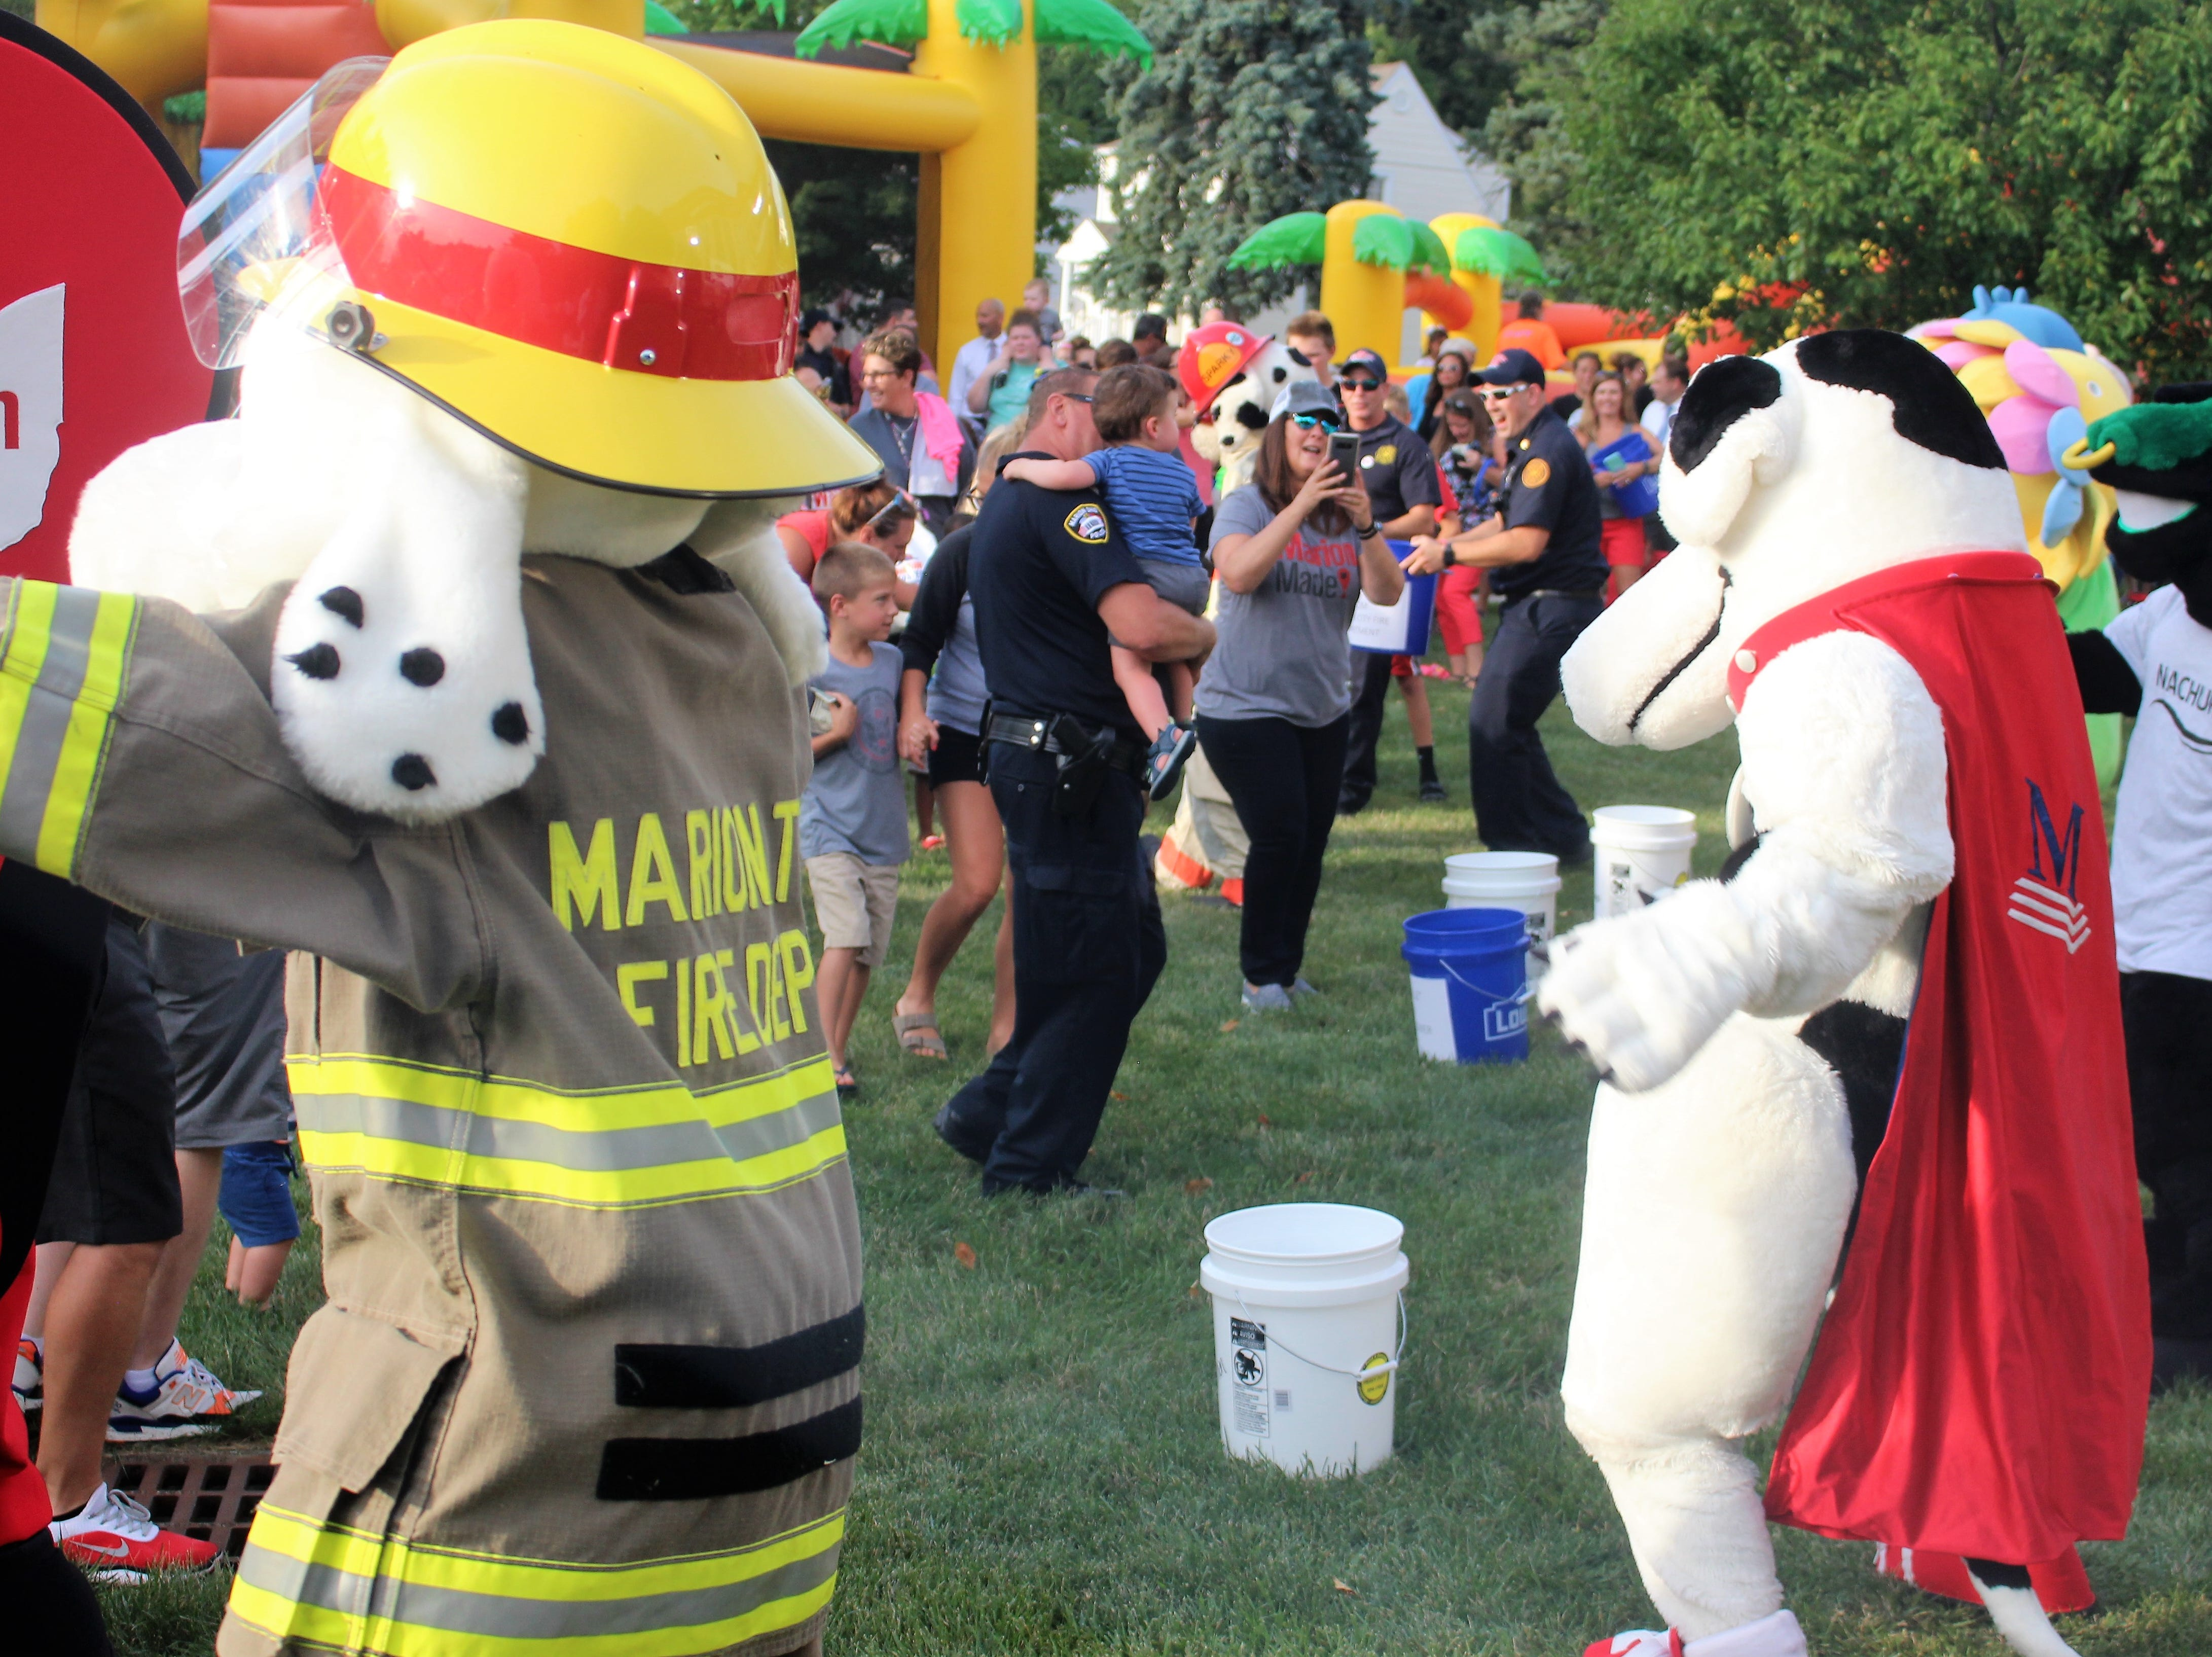 Mascots representing different organizations across town dance at Grant Middle School. Kingston representing Kingston Residence of Marion won the dance off on Tuesday.